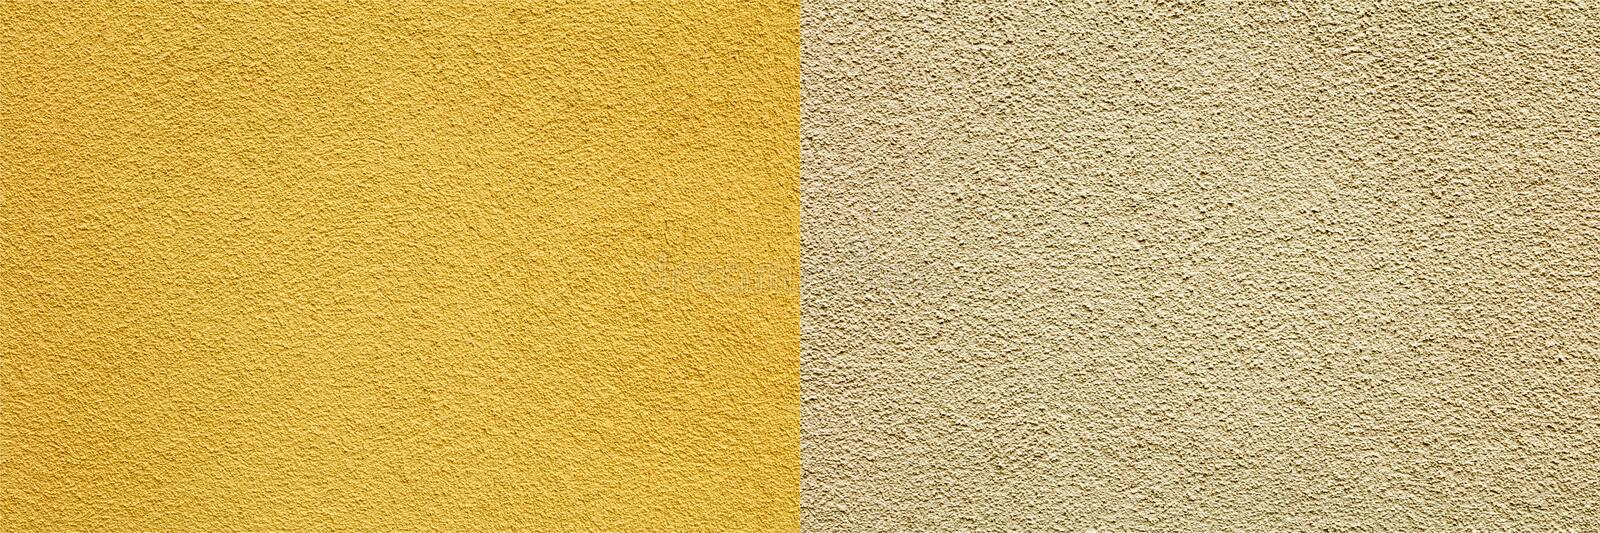 Rough textured mortar background collage. Sandpaper gritty surface rough stucco exterior textures wall blank copy space solid construction wallpaper design stock photos